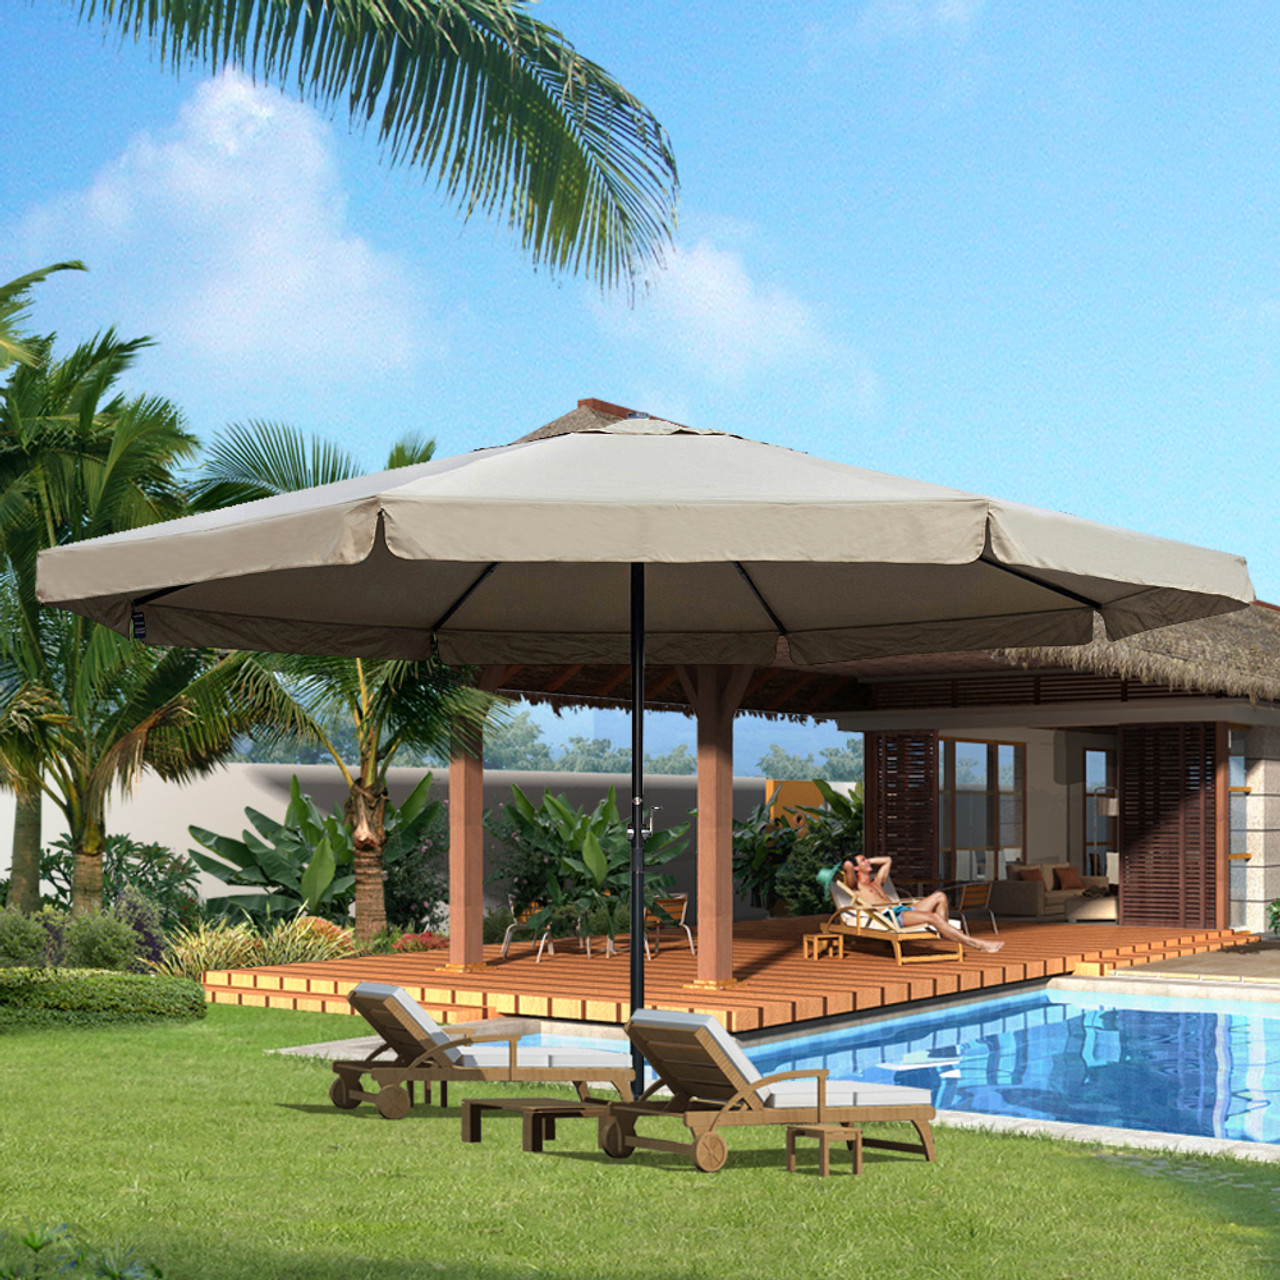 16 feet large market patio umbrella with cross base(tan) Market Patio Umbrella